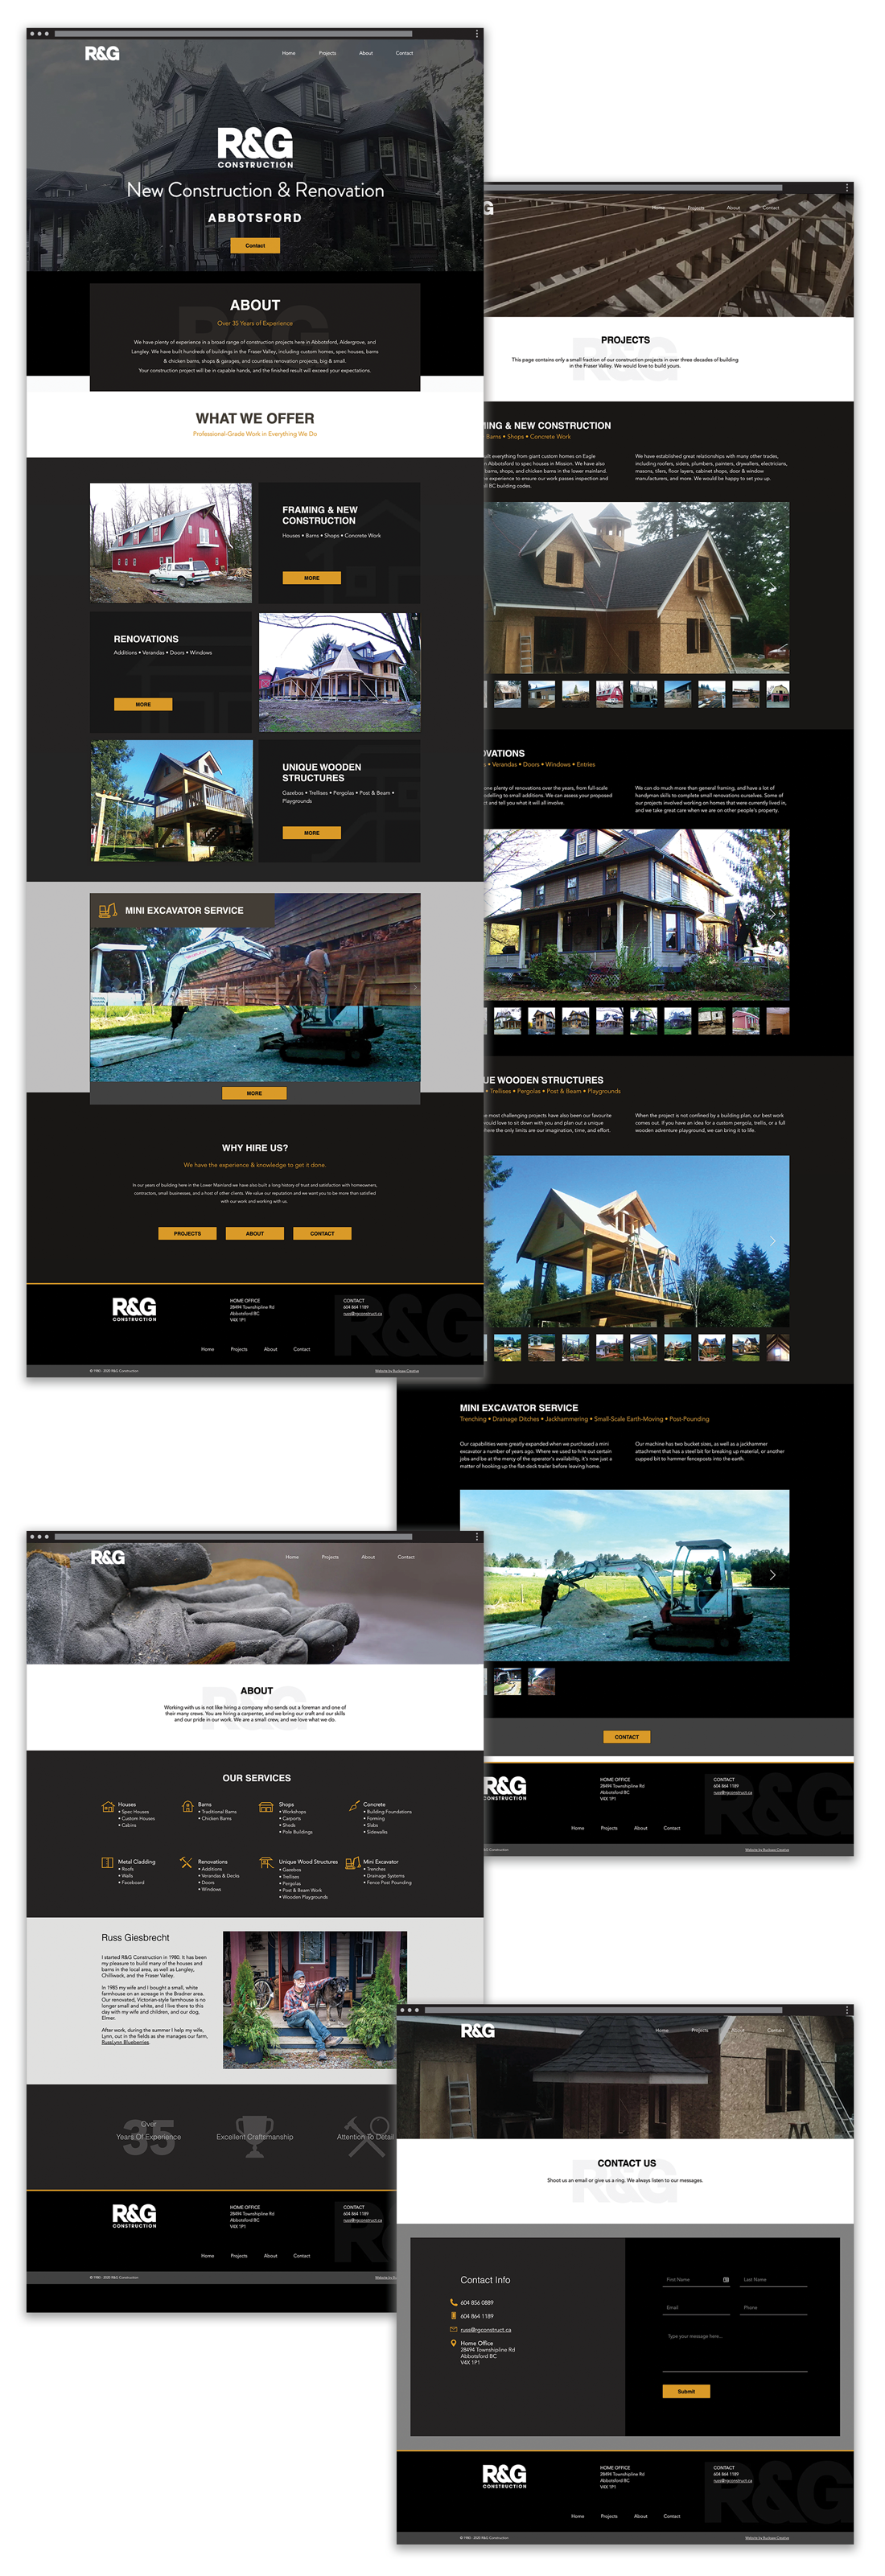 8-R&G-Construction--Website-Pages